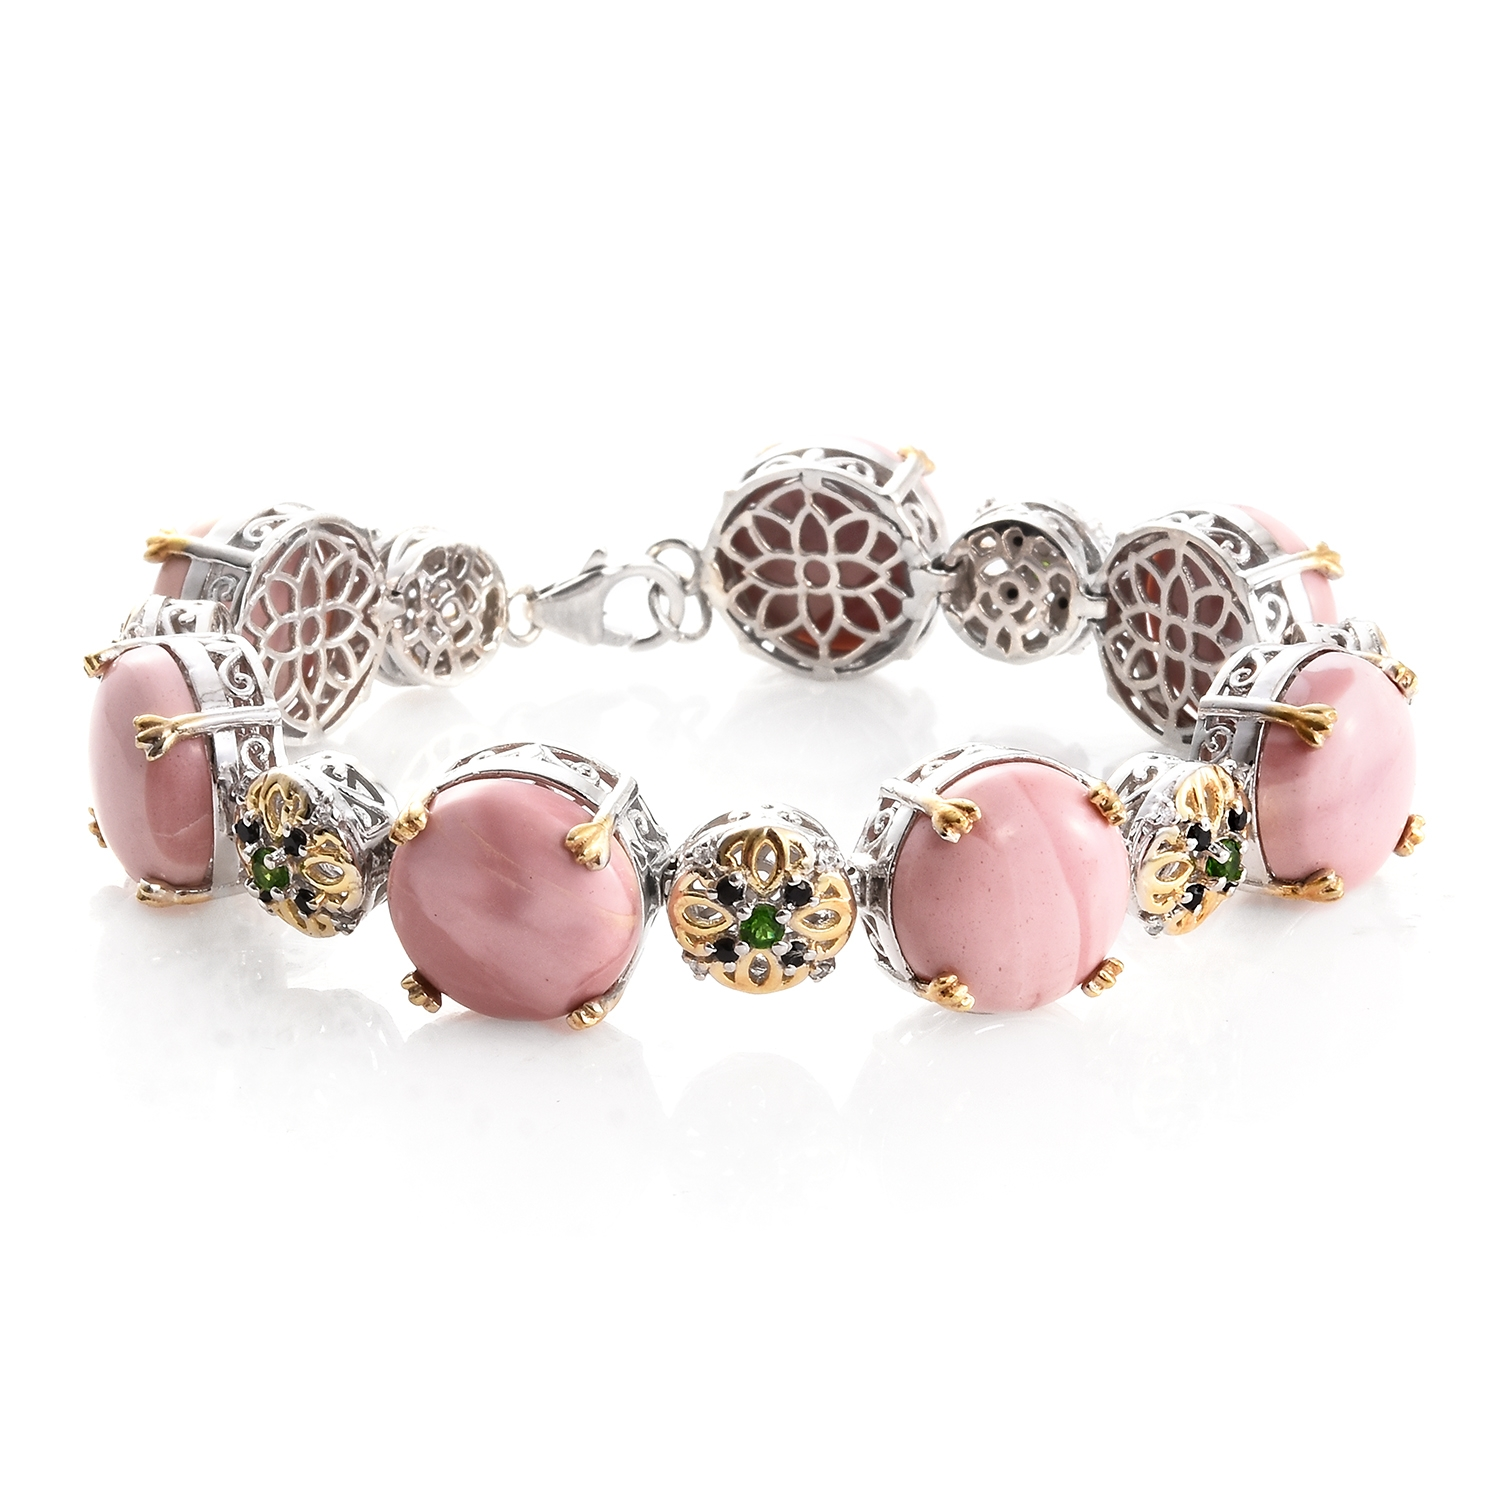 "Pink Opal, Multi Gemstone 14K Yellow Gold and Platinum Plated Silver Bracelet For Women 7.50"" by Shop LC"